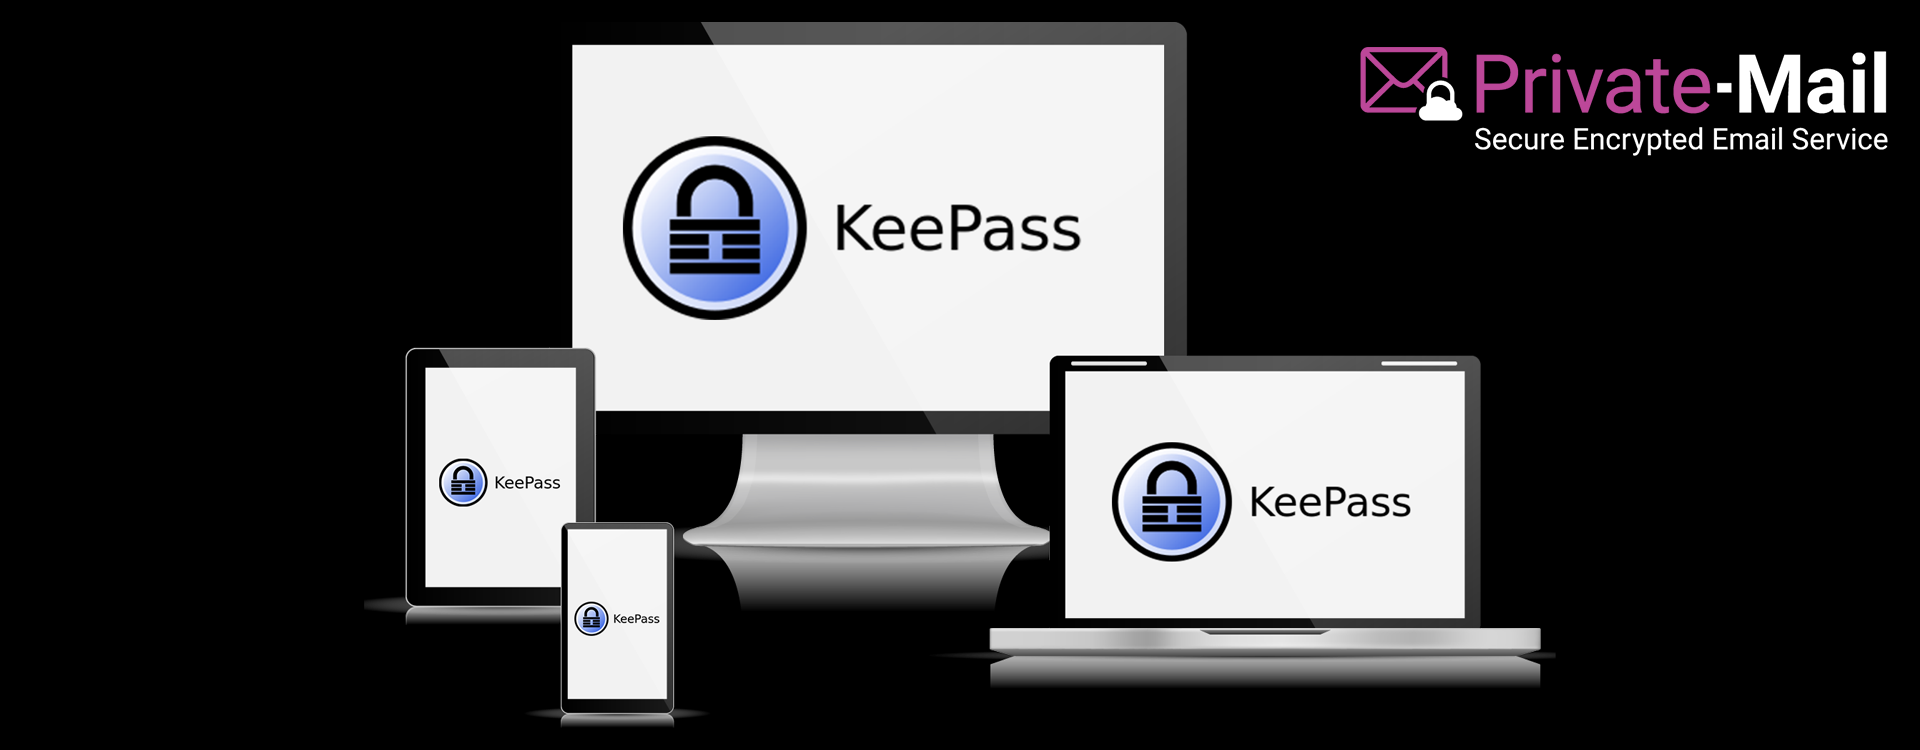 Why You Should Use KeePass to Manage Passwords and Keys